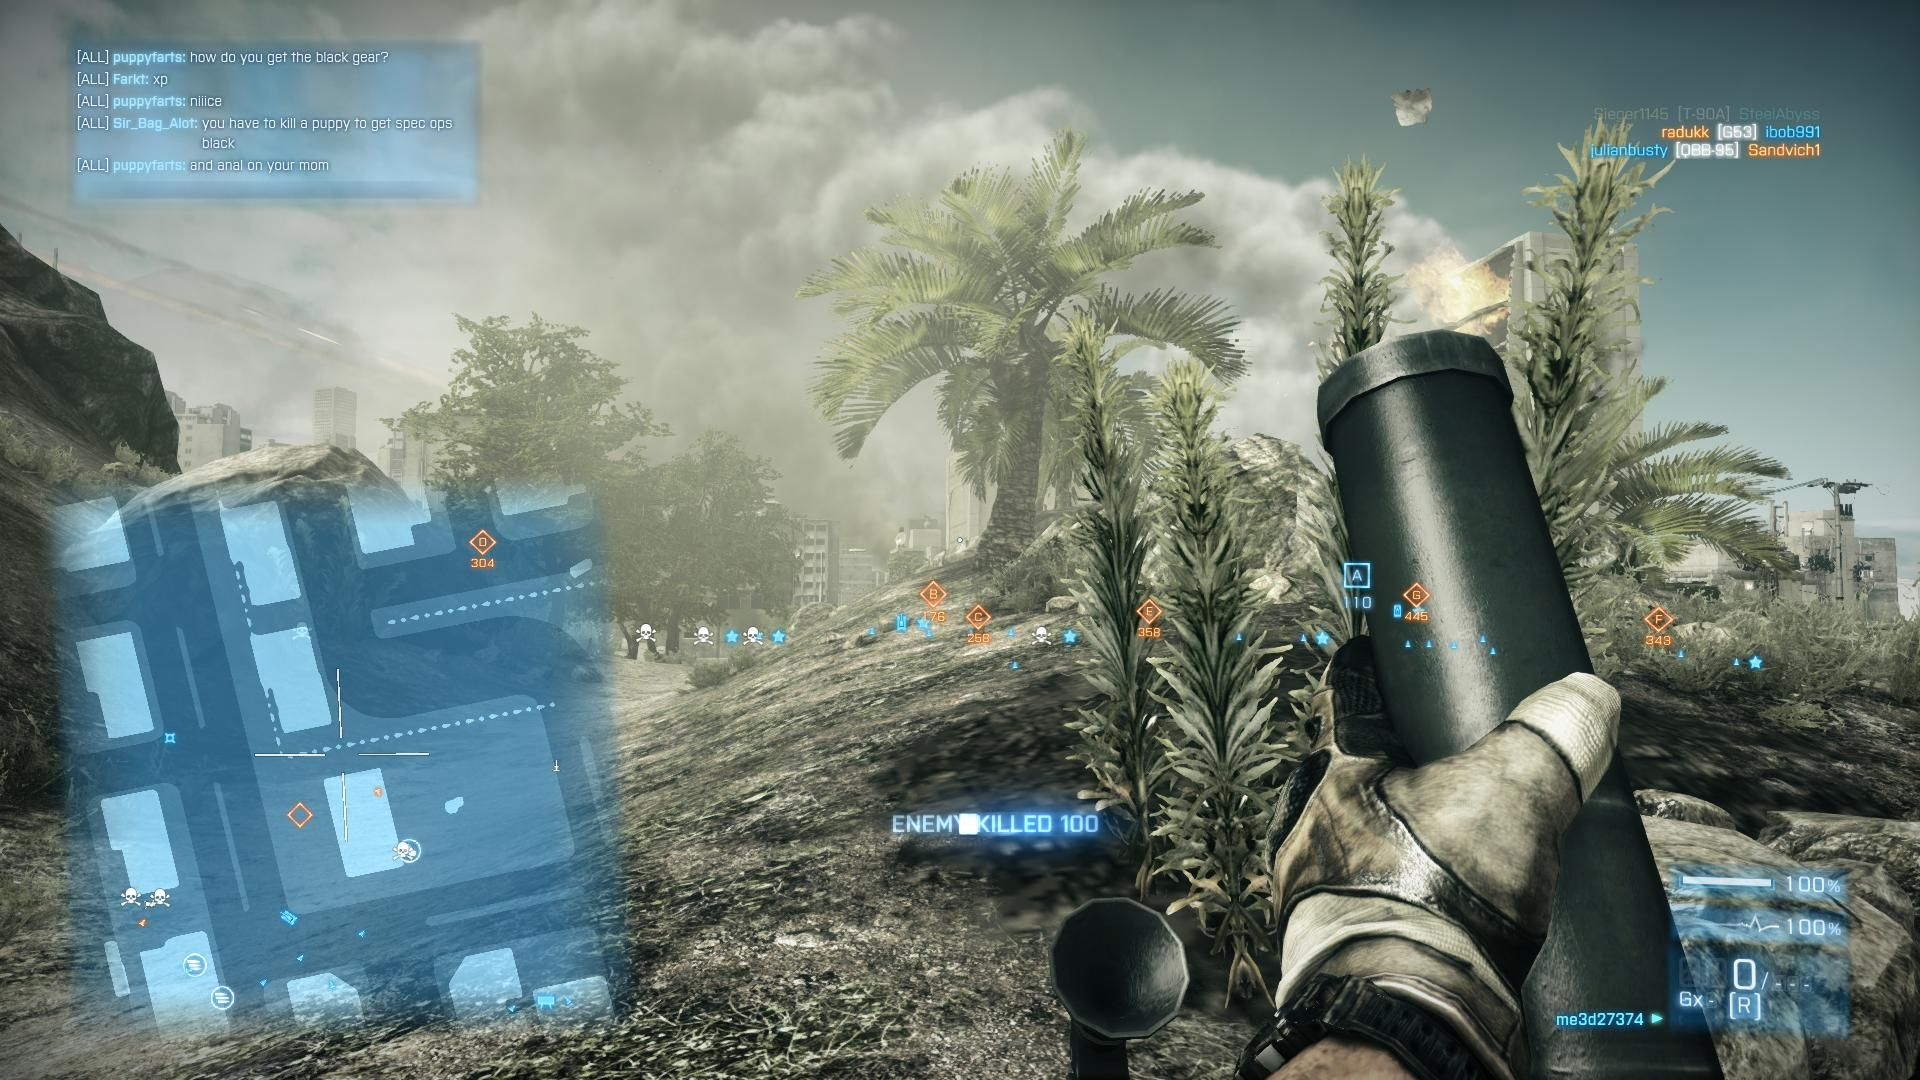 Battlefield 3: Back to Karkand Windows Using mortars to soften them up